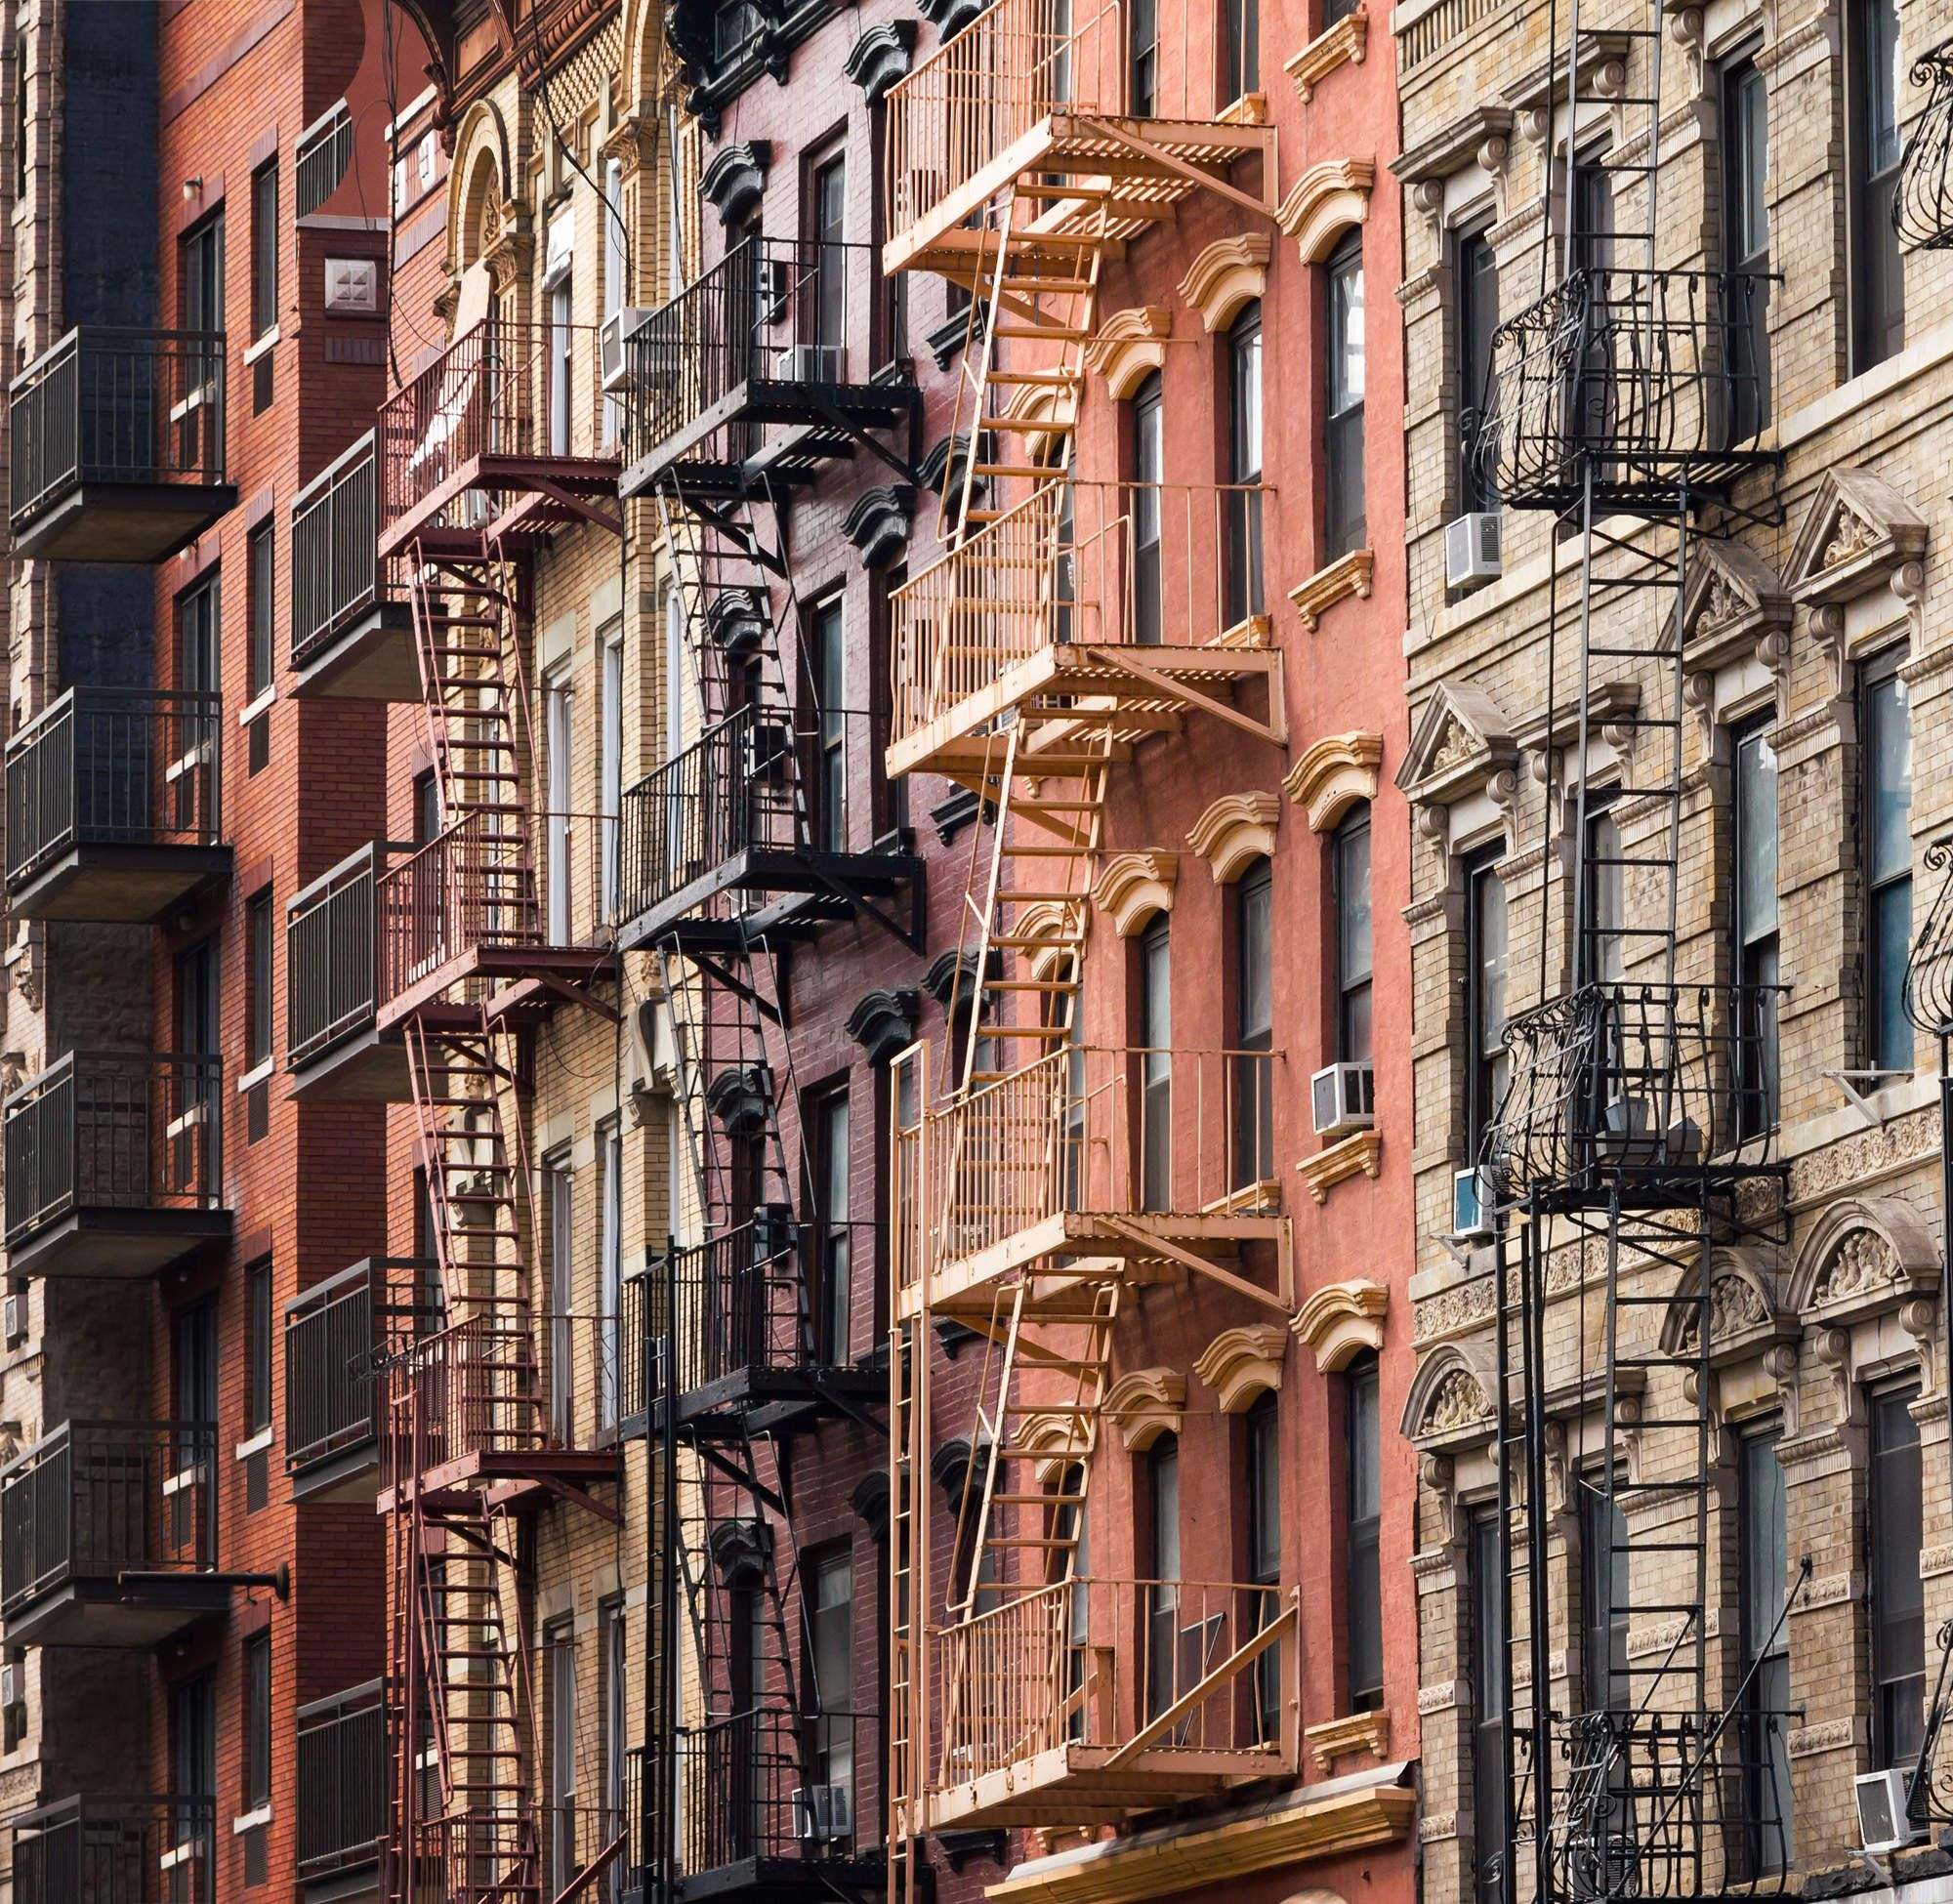 Cheap Apartments In New York City: Everything You Need To Know About Affordable Housing In